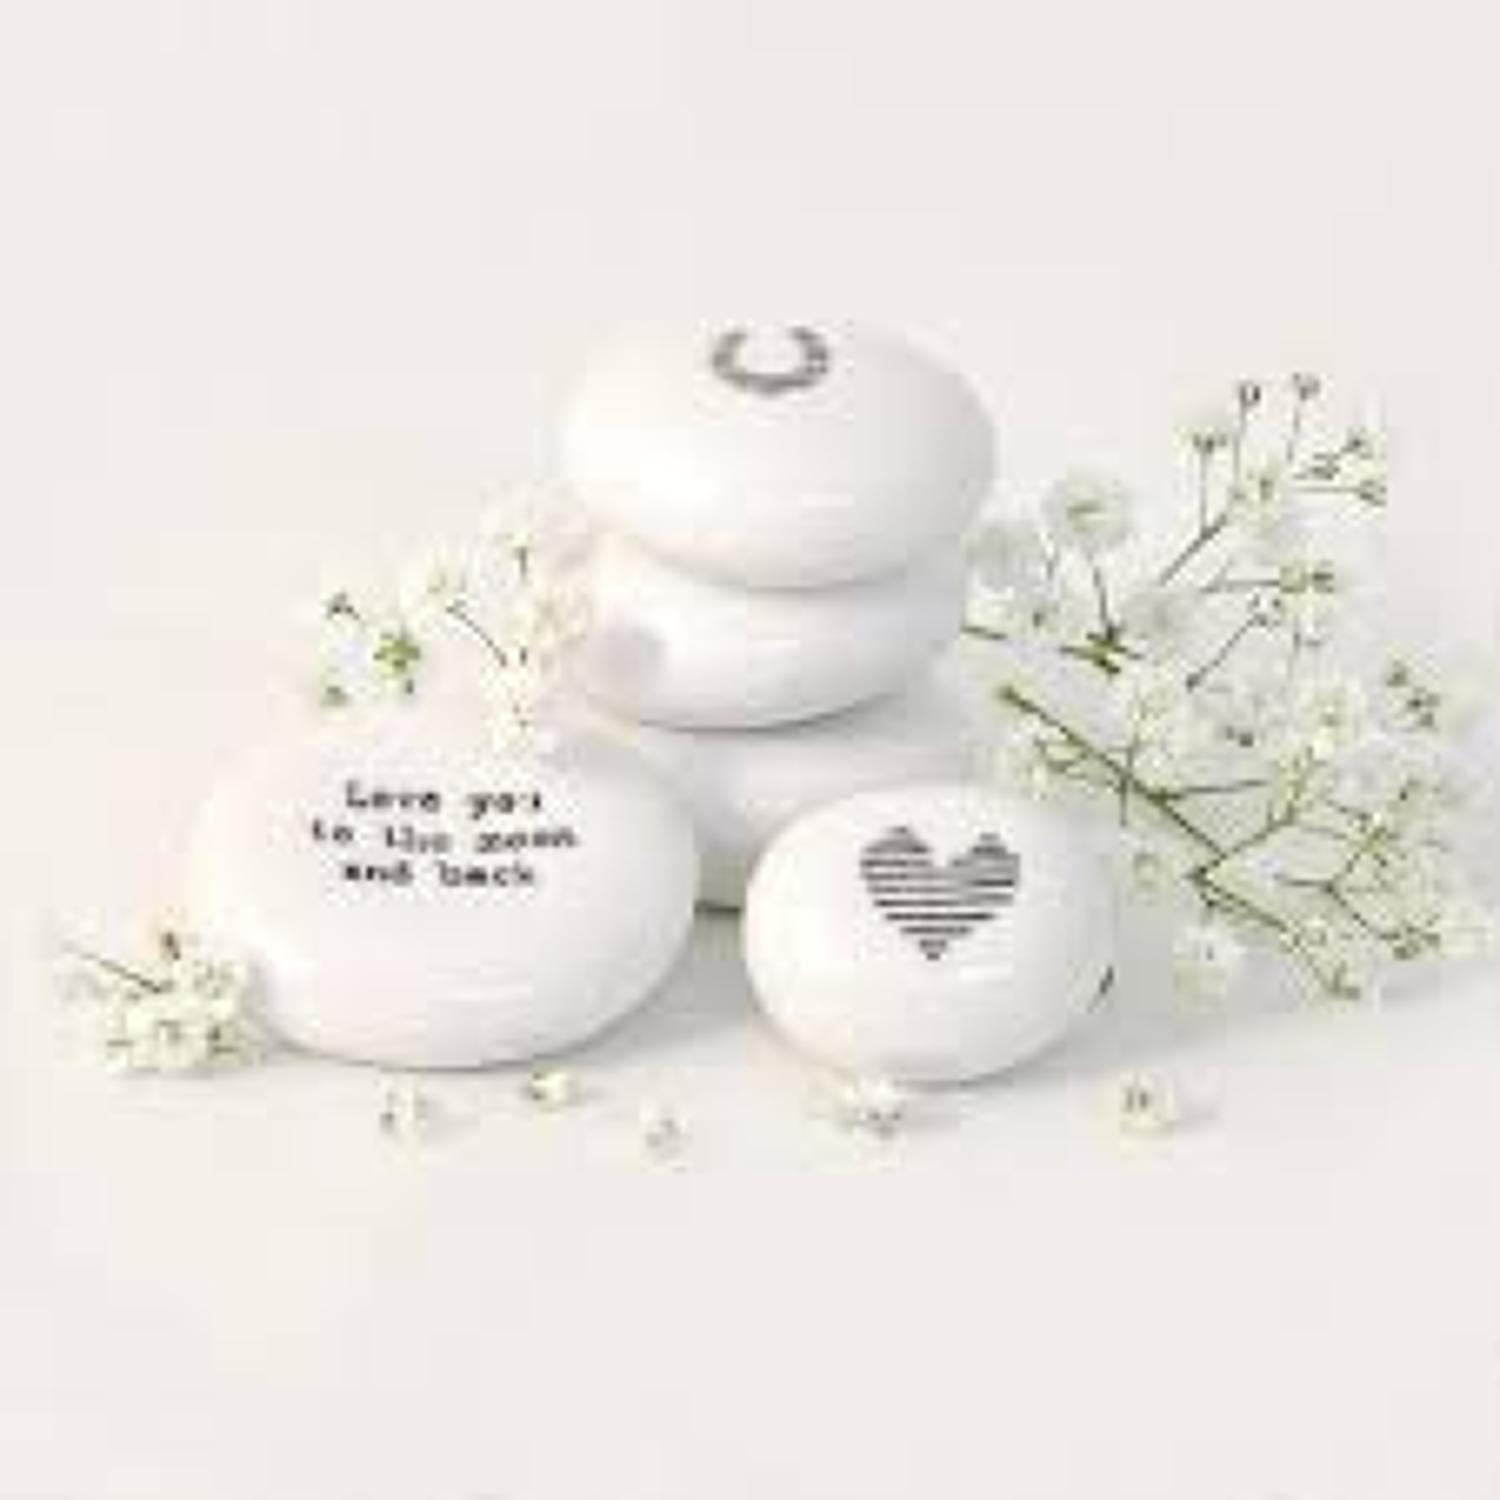 East of India - Porcelain pebble - Love you to the moon and back